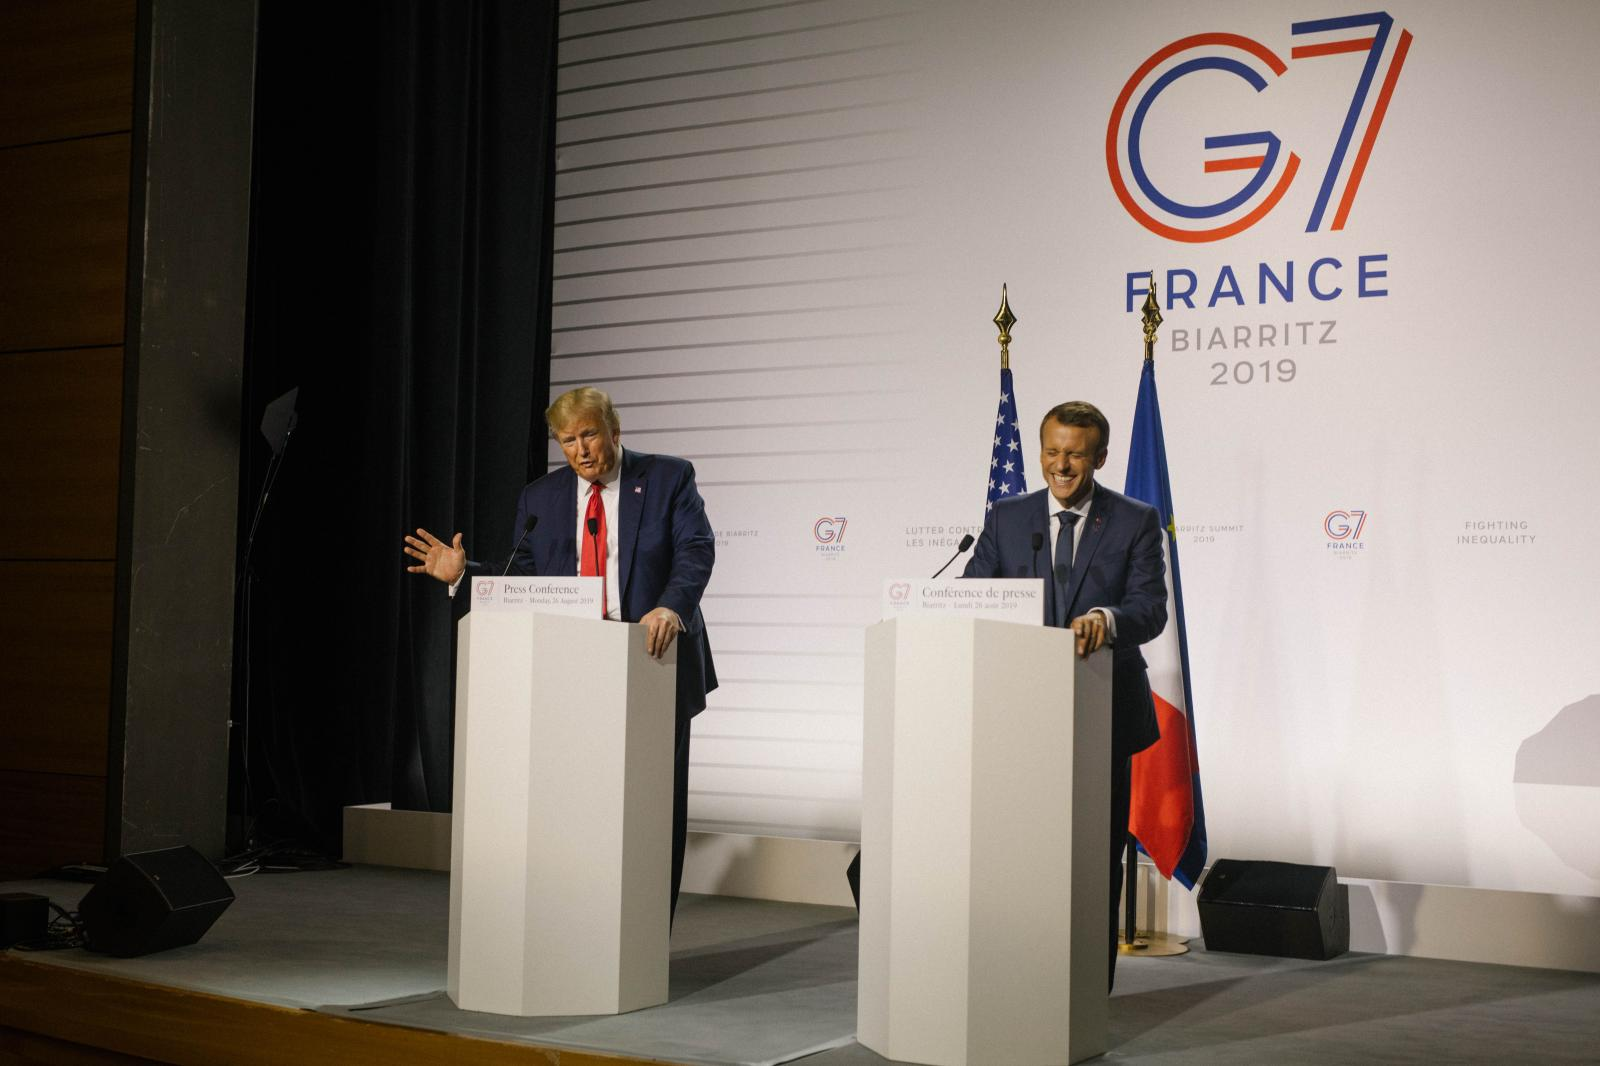 2019-08-25 - American president Donald Trump and French president Emmanuel Macron hold a joint press conference